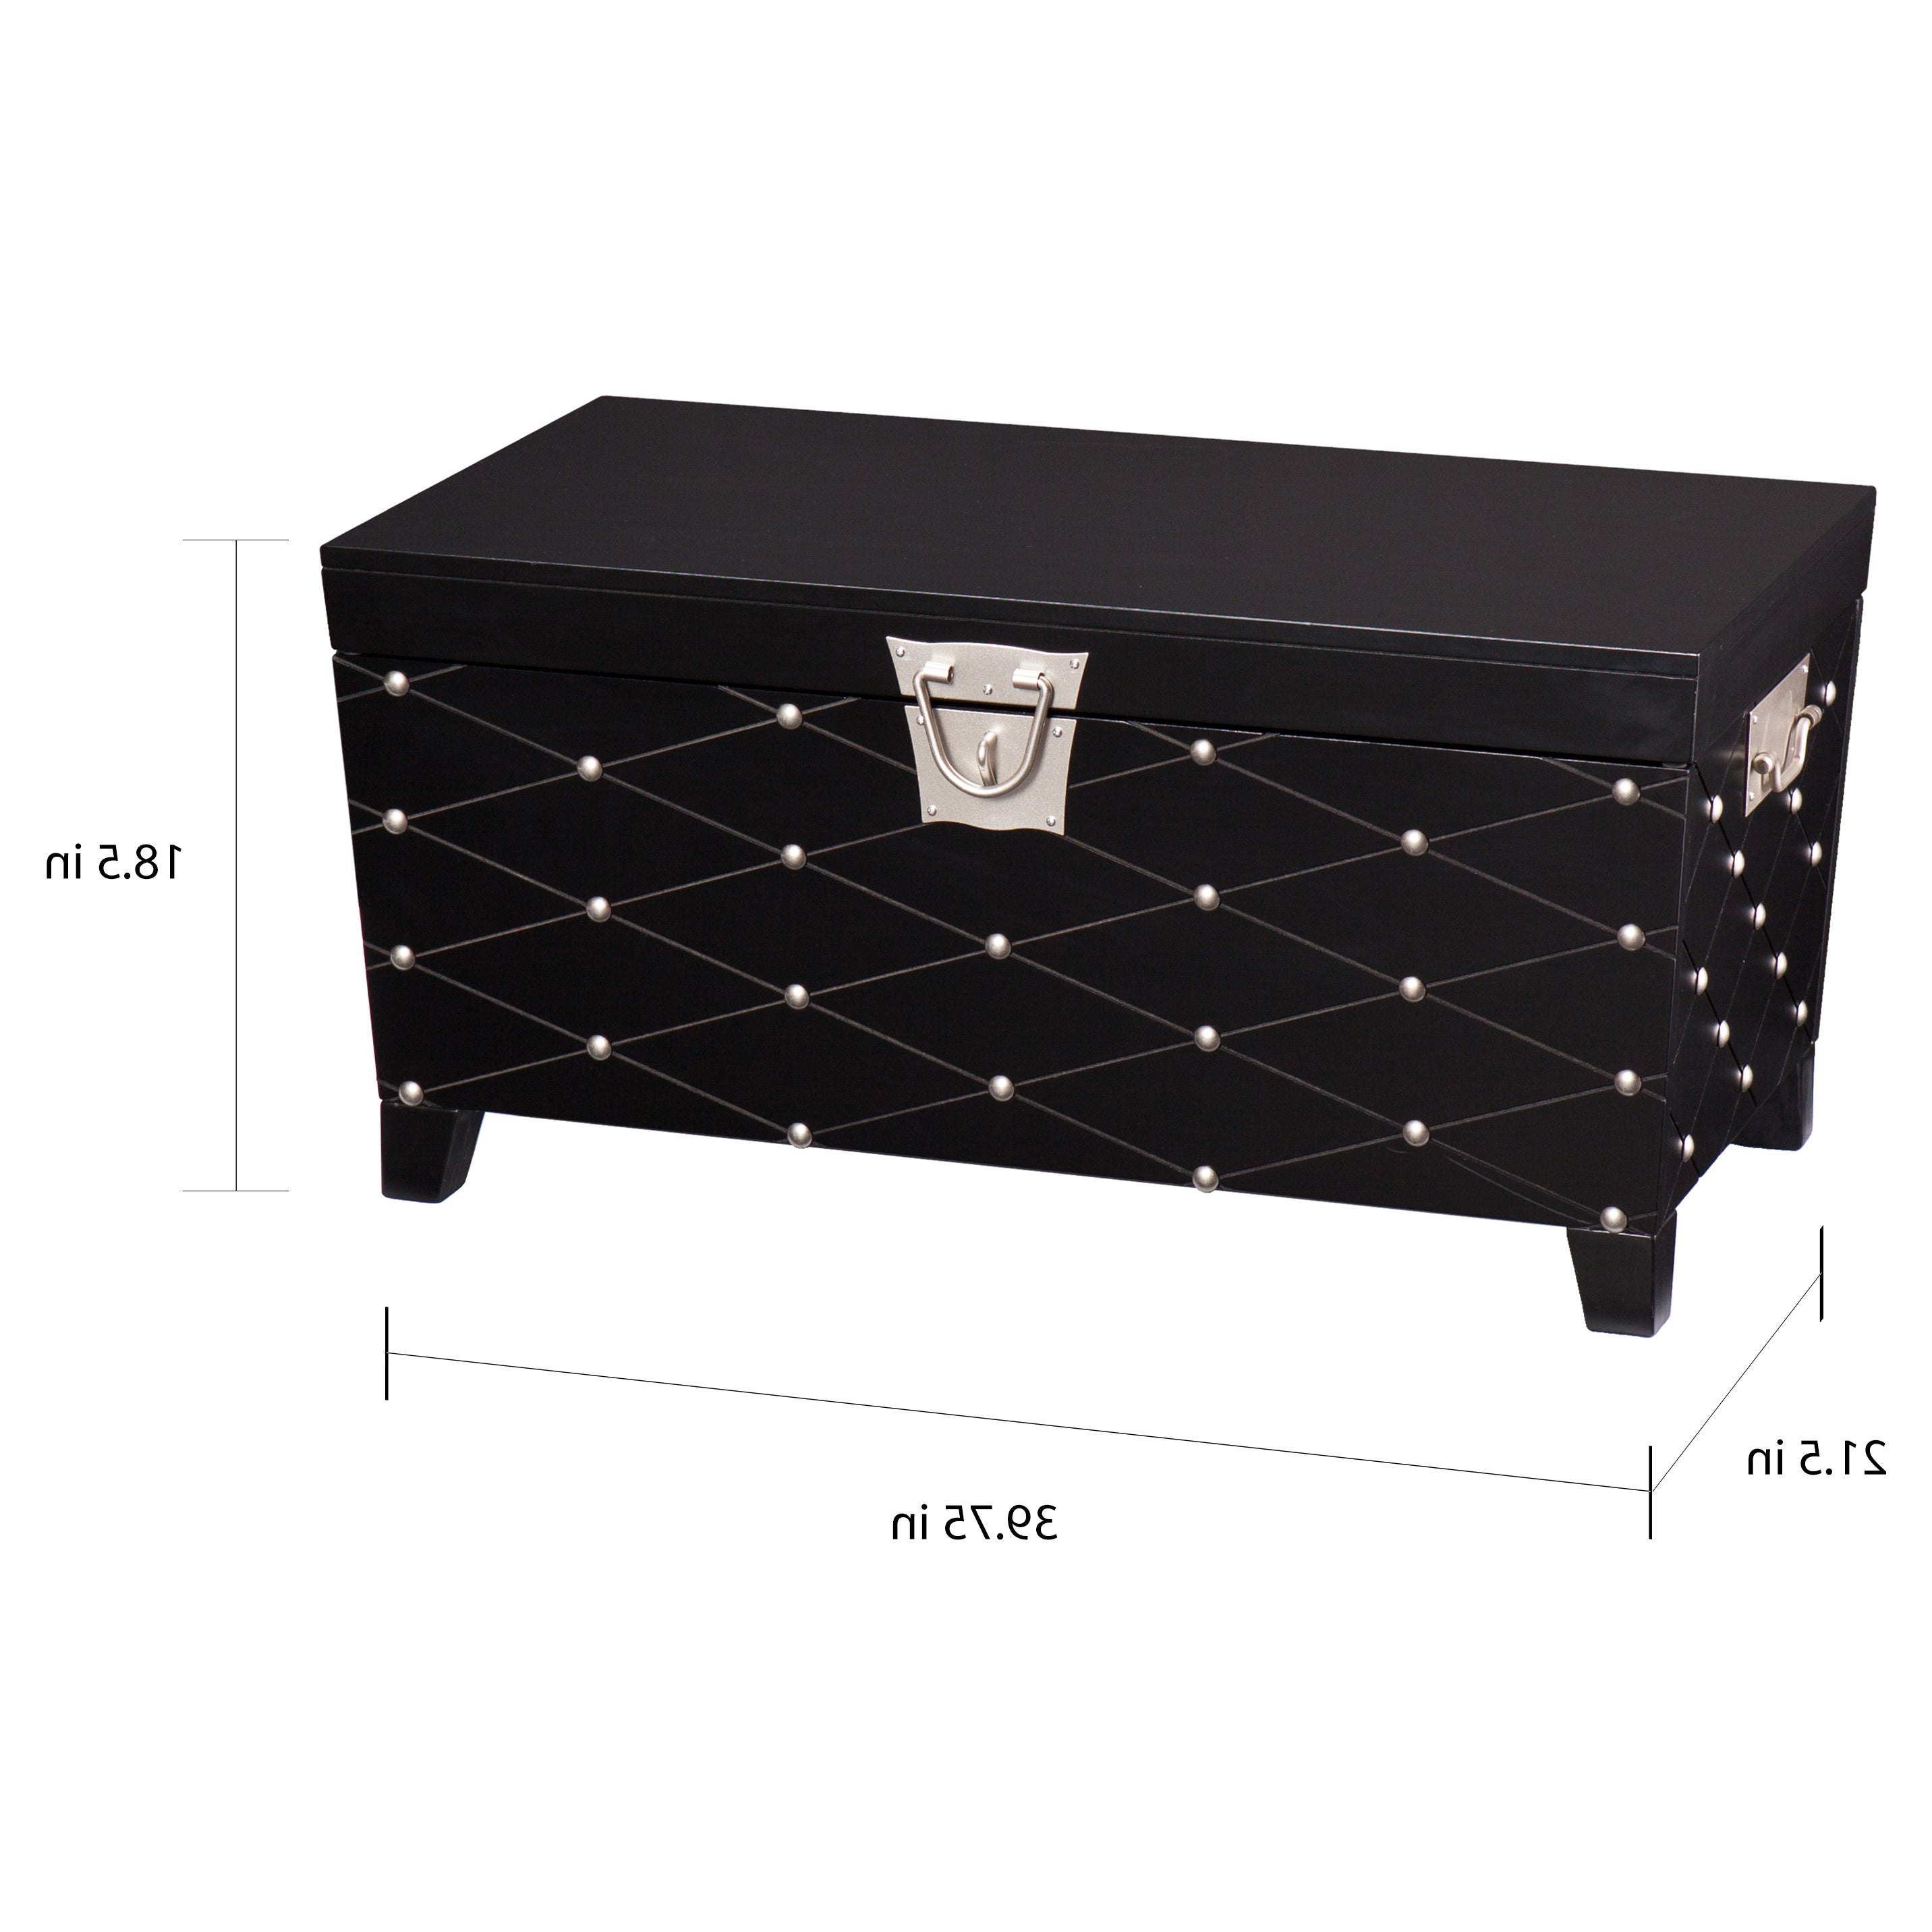 Most Recently Released Copper Grove Liatris Black And Satin Silver Coffee Tables Throughout Copper Grove Liatris Black And Satin Silver Coffee/ Cocktail Table Trunk (View 15 of 20)